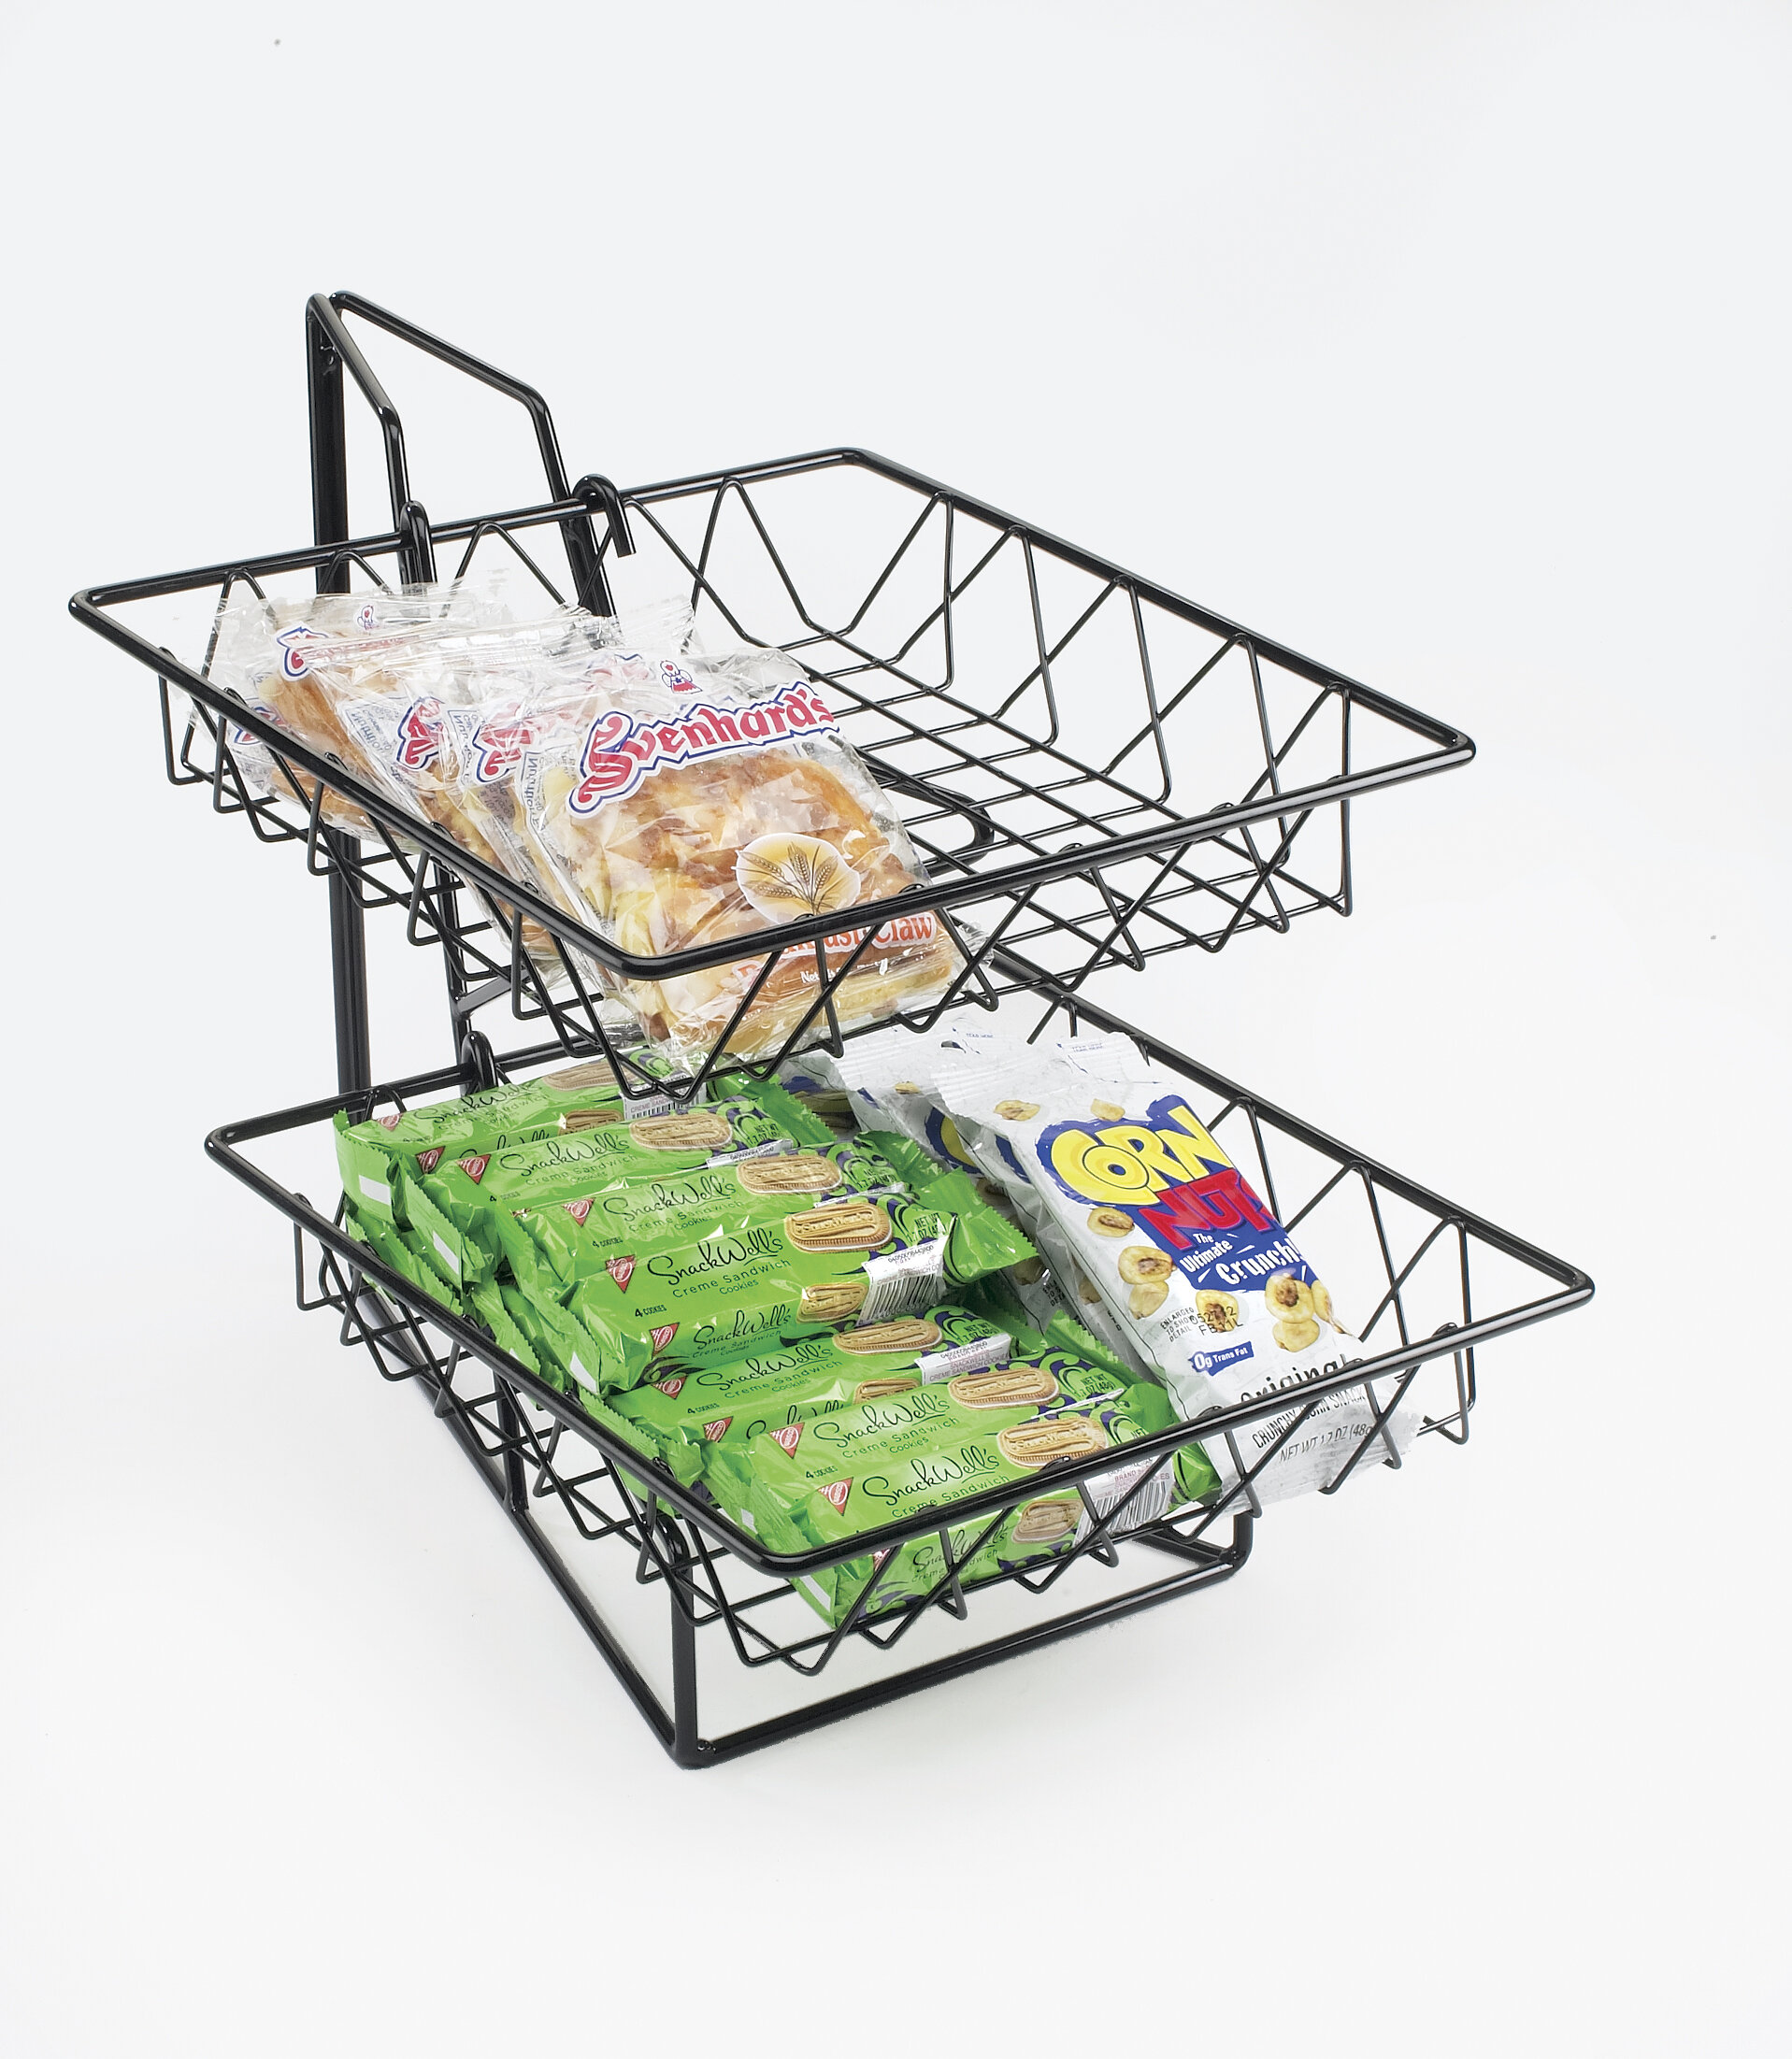 2 Tier Square Wire Basket Rack